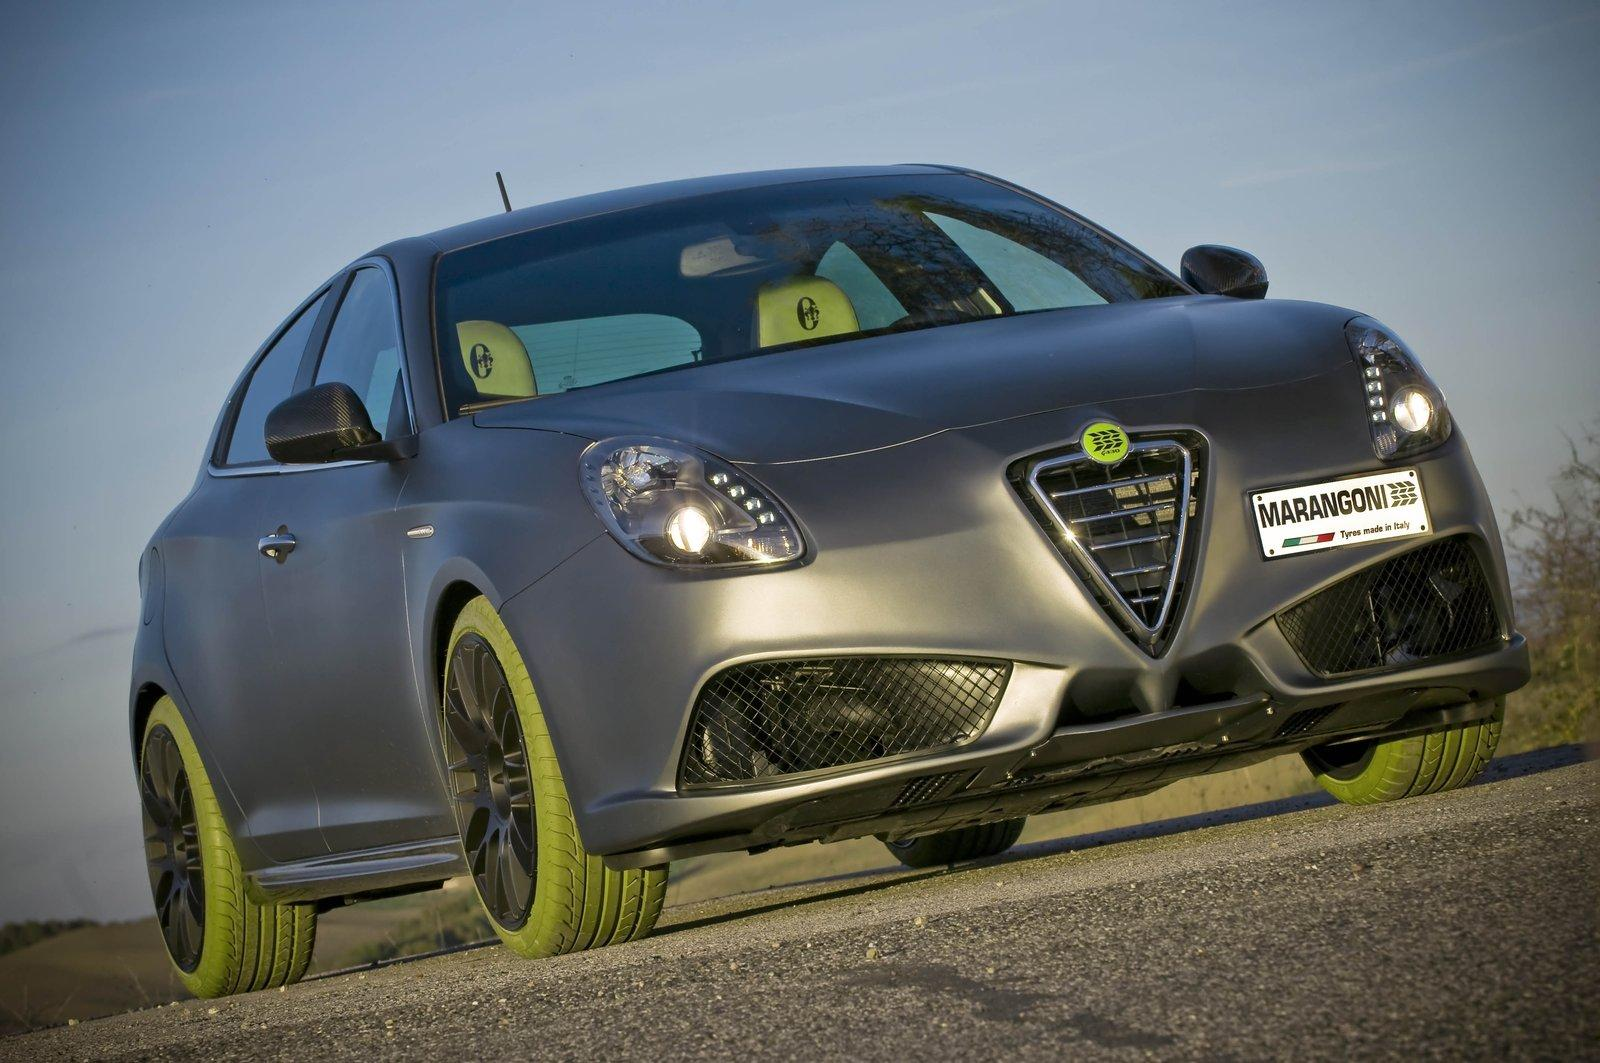 alfa romeo giulietta g430 - photo #12